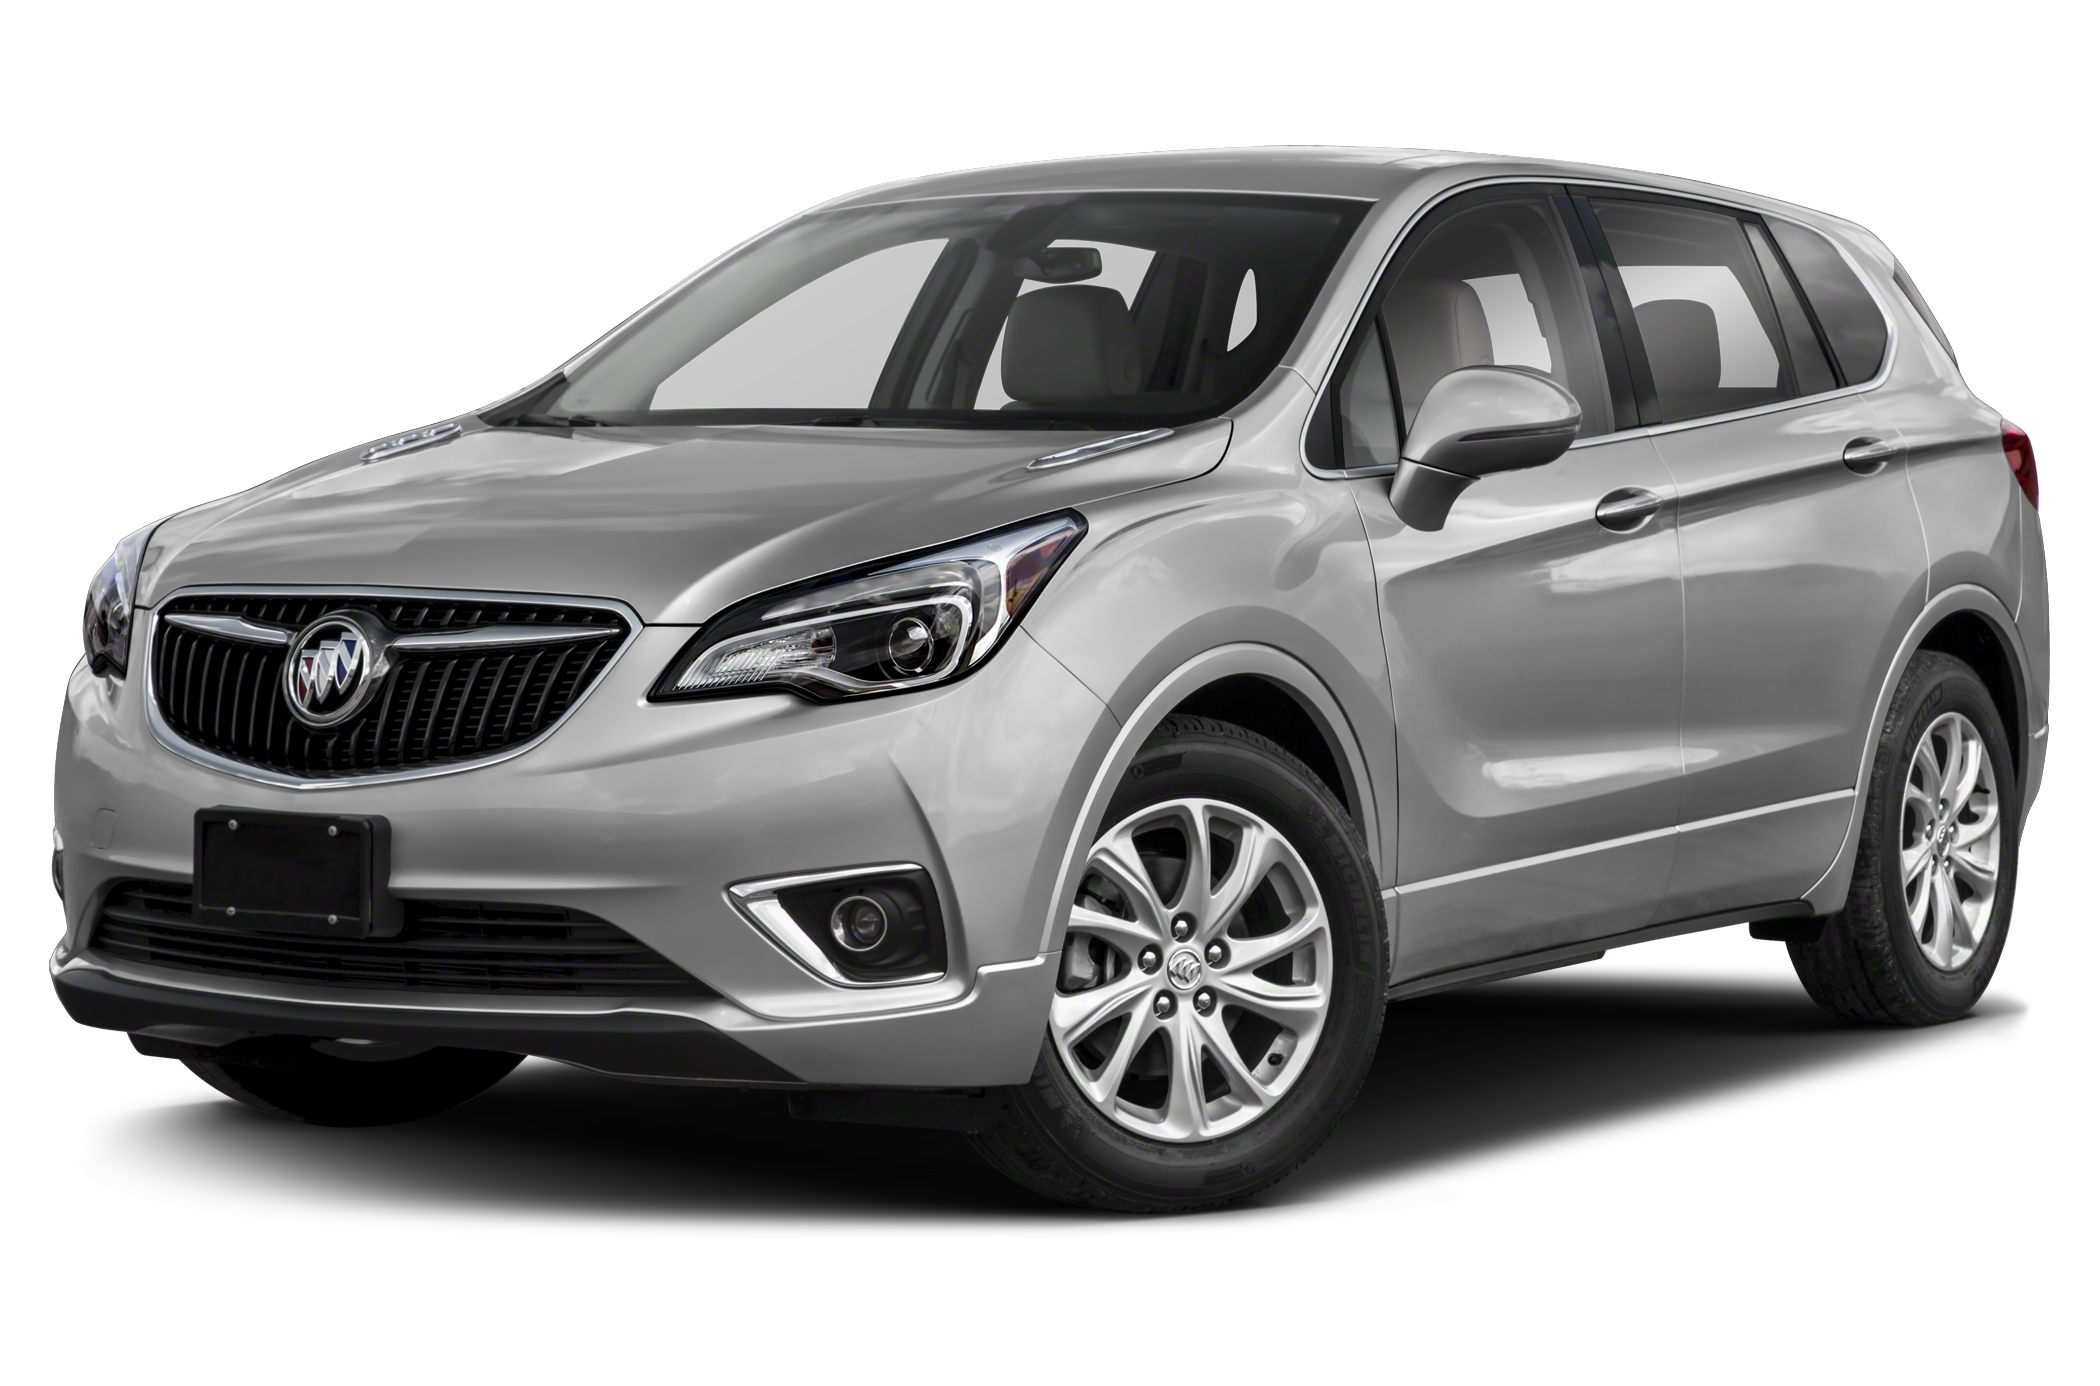 23 A 2020 Buick Envision Reviews Photos